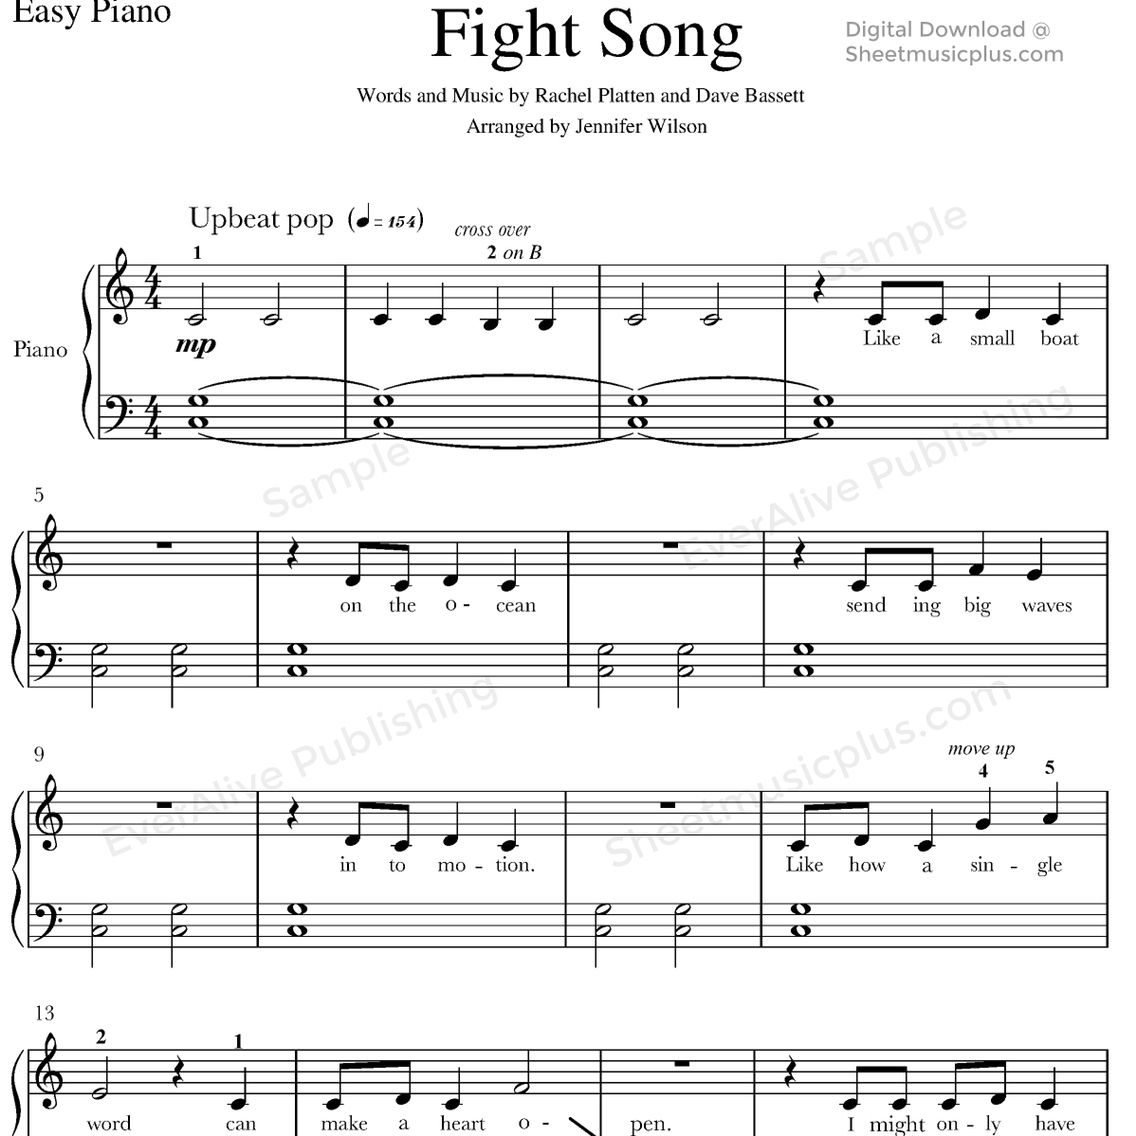 Fight Song By Rachel Platten For Easy Piano Sheet Music Piano